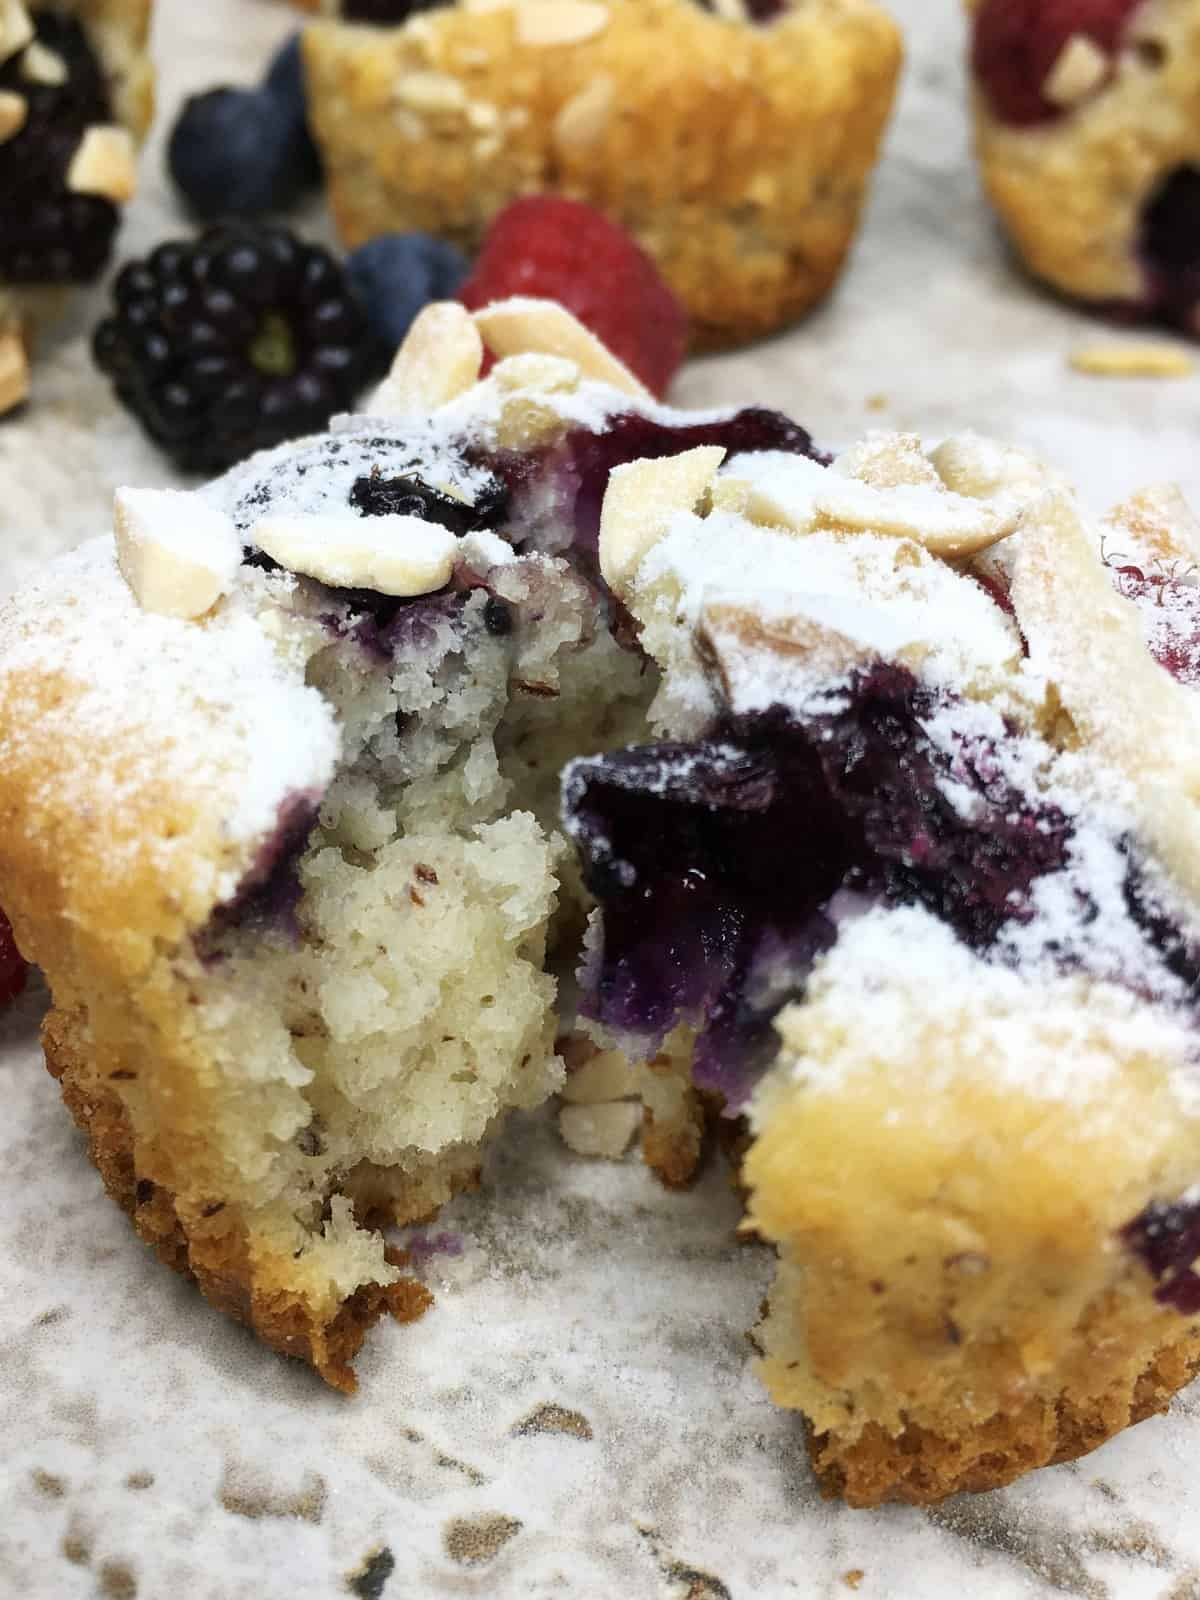 A sliced bite-size muffin topped with berries and sprinkled with icing sugar with other cakes around: Close up